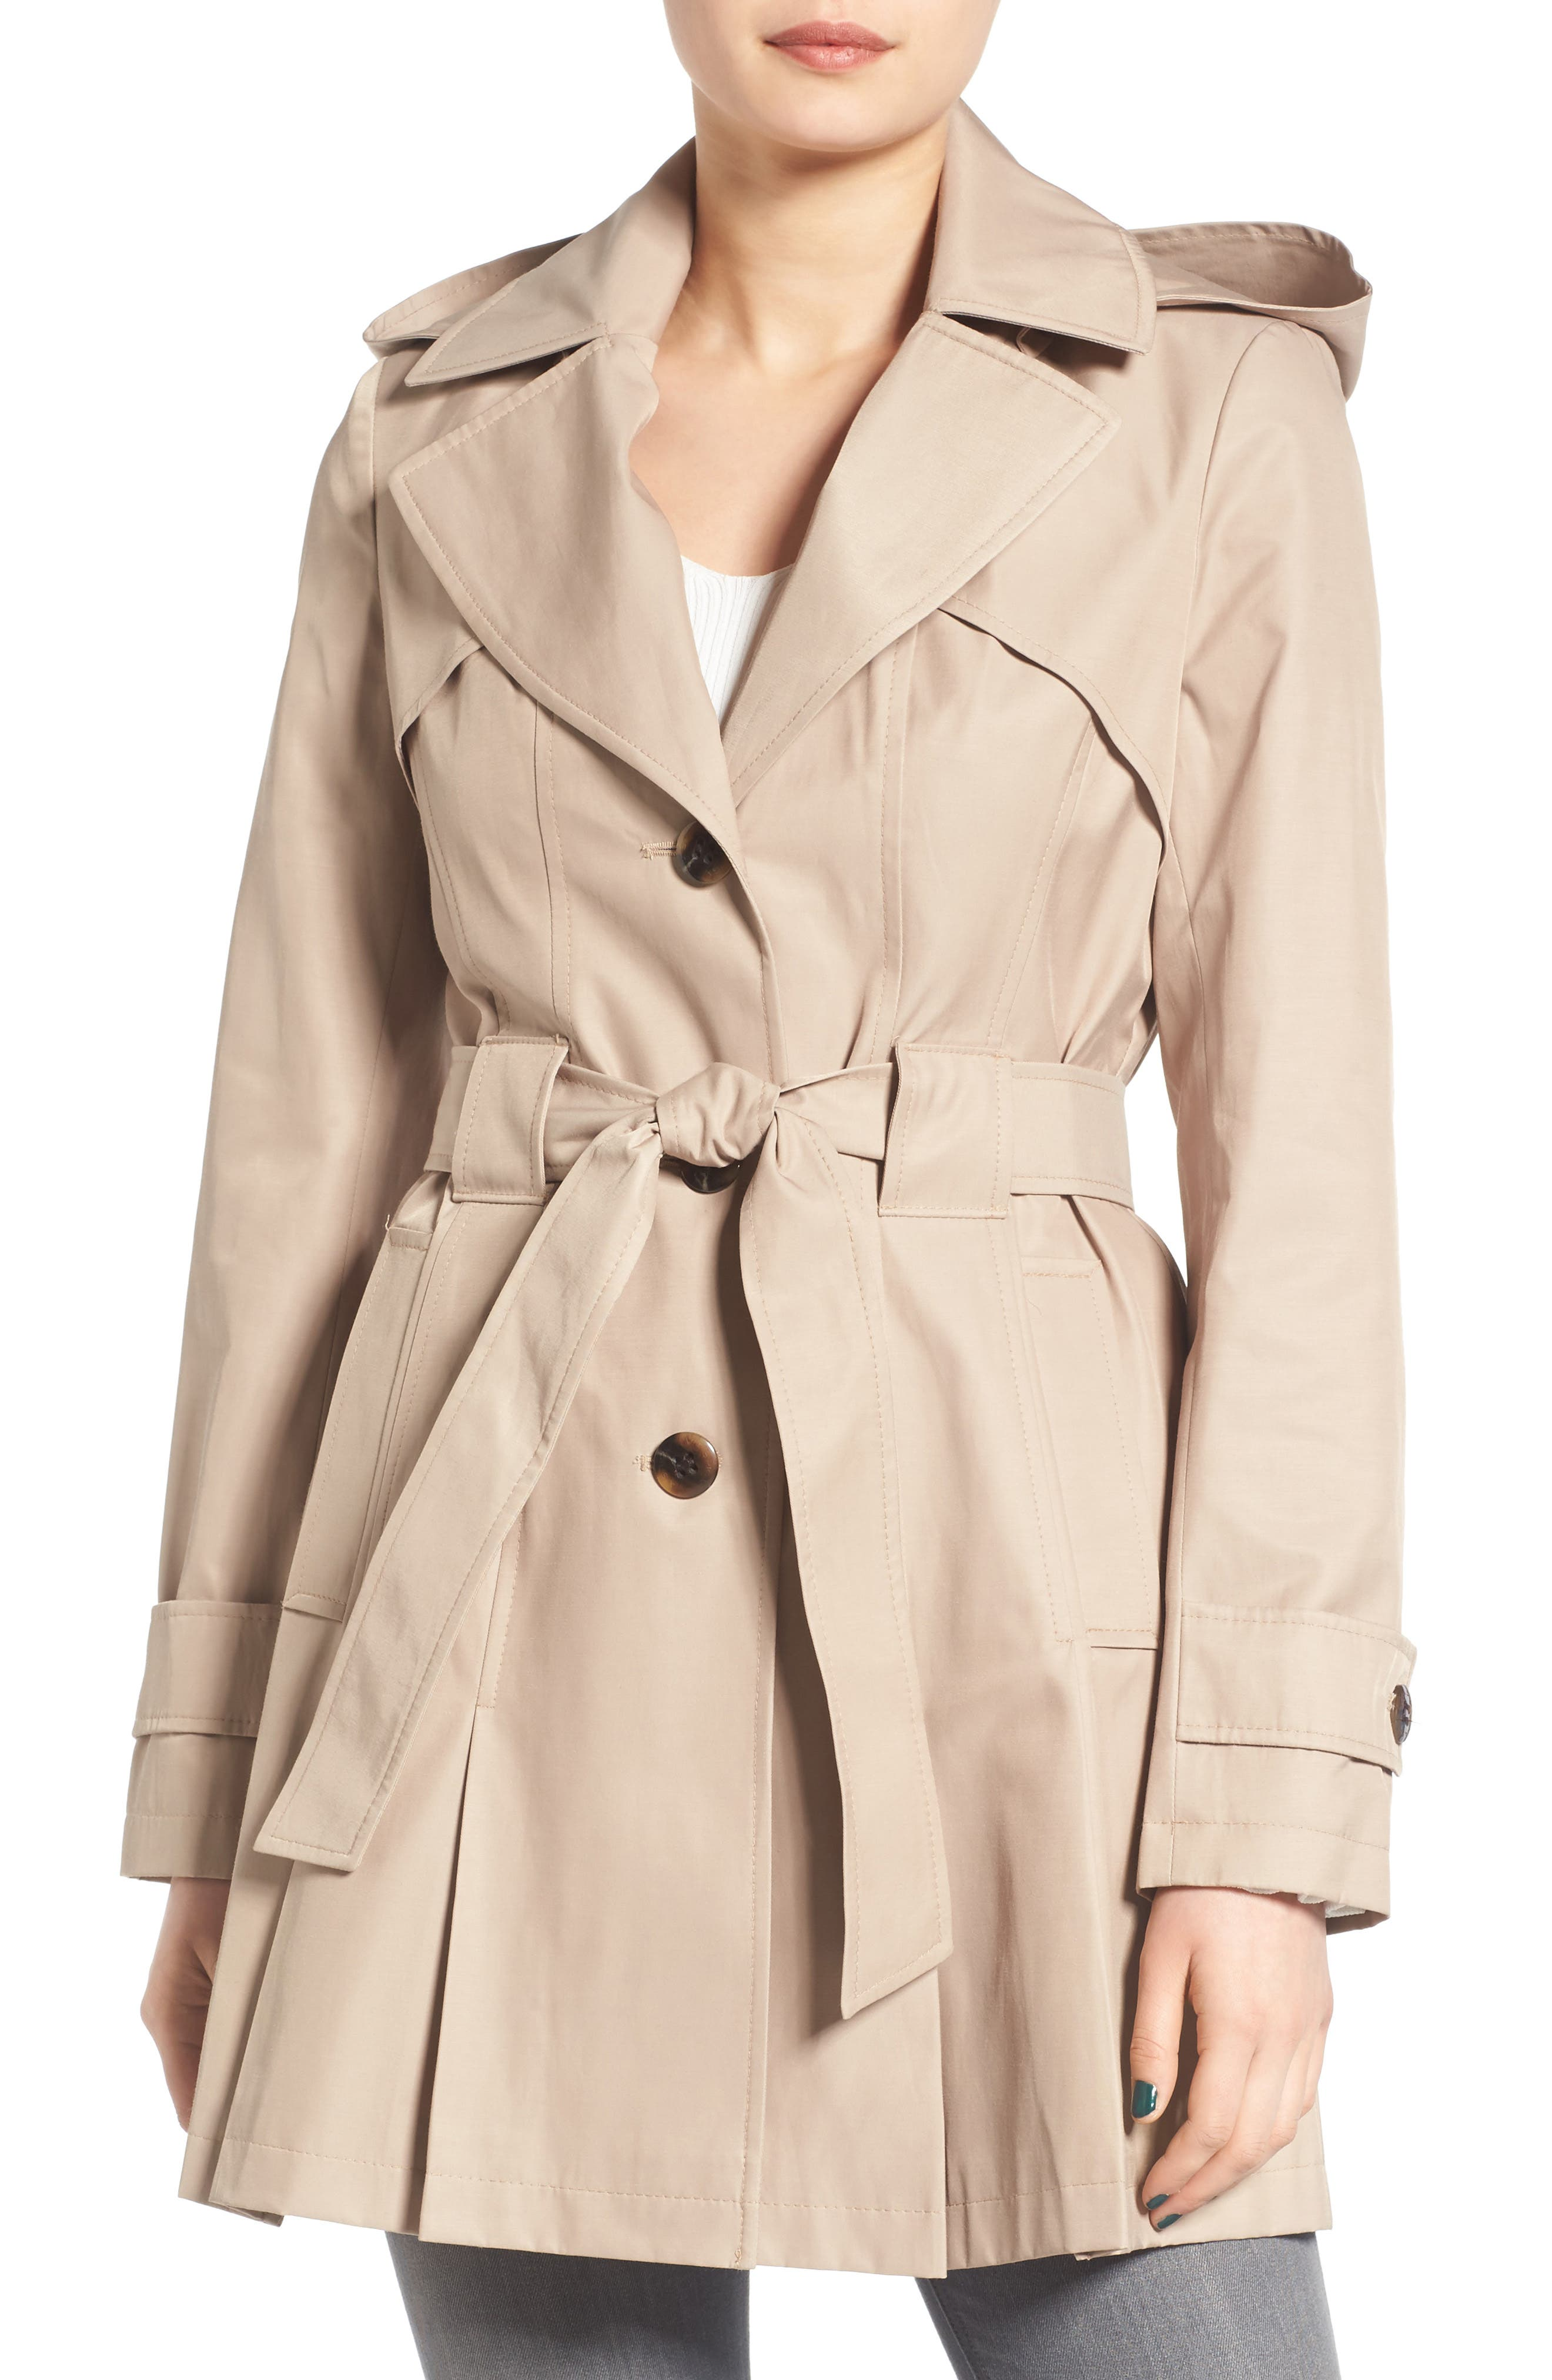 'Scarpa' Hooded Single Breasted Trench Coat,                             Main thumbnail 1, color,                             Sand